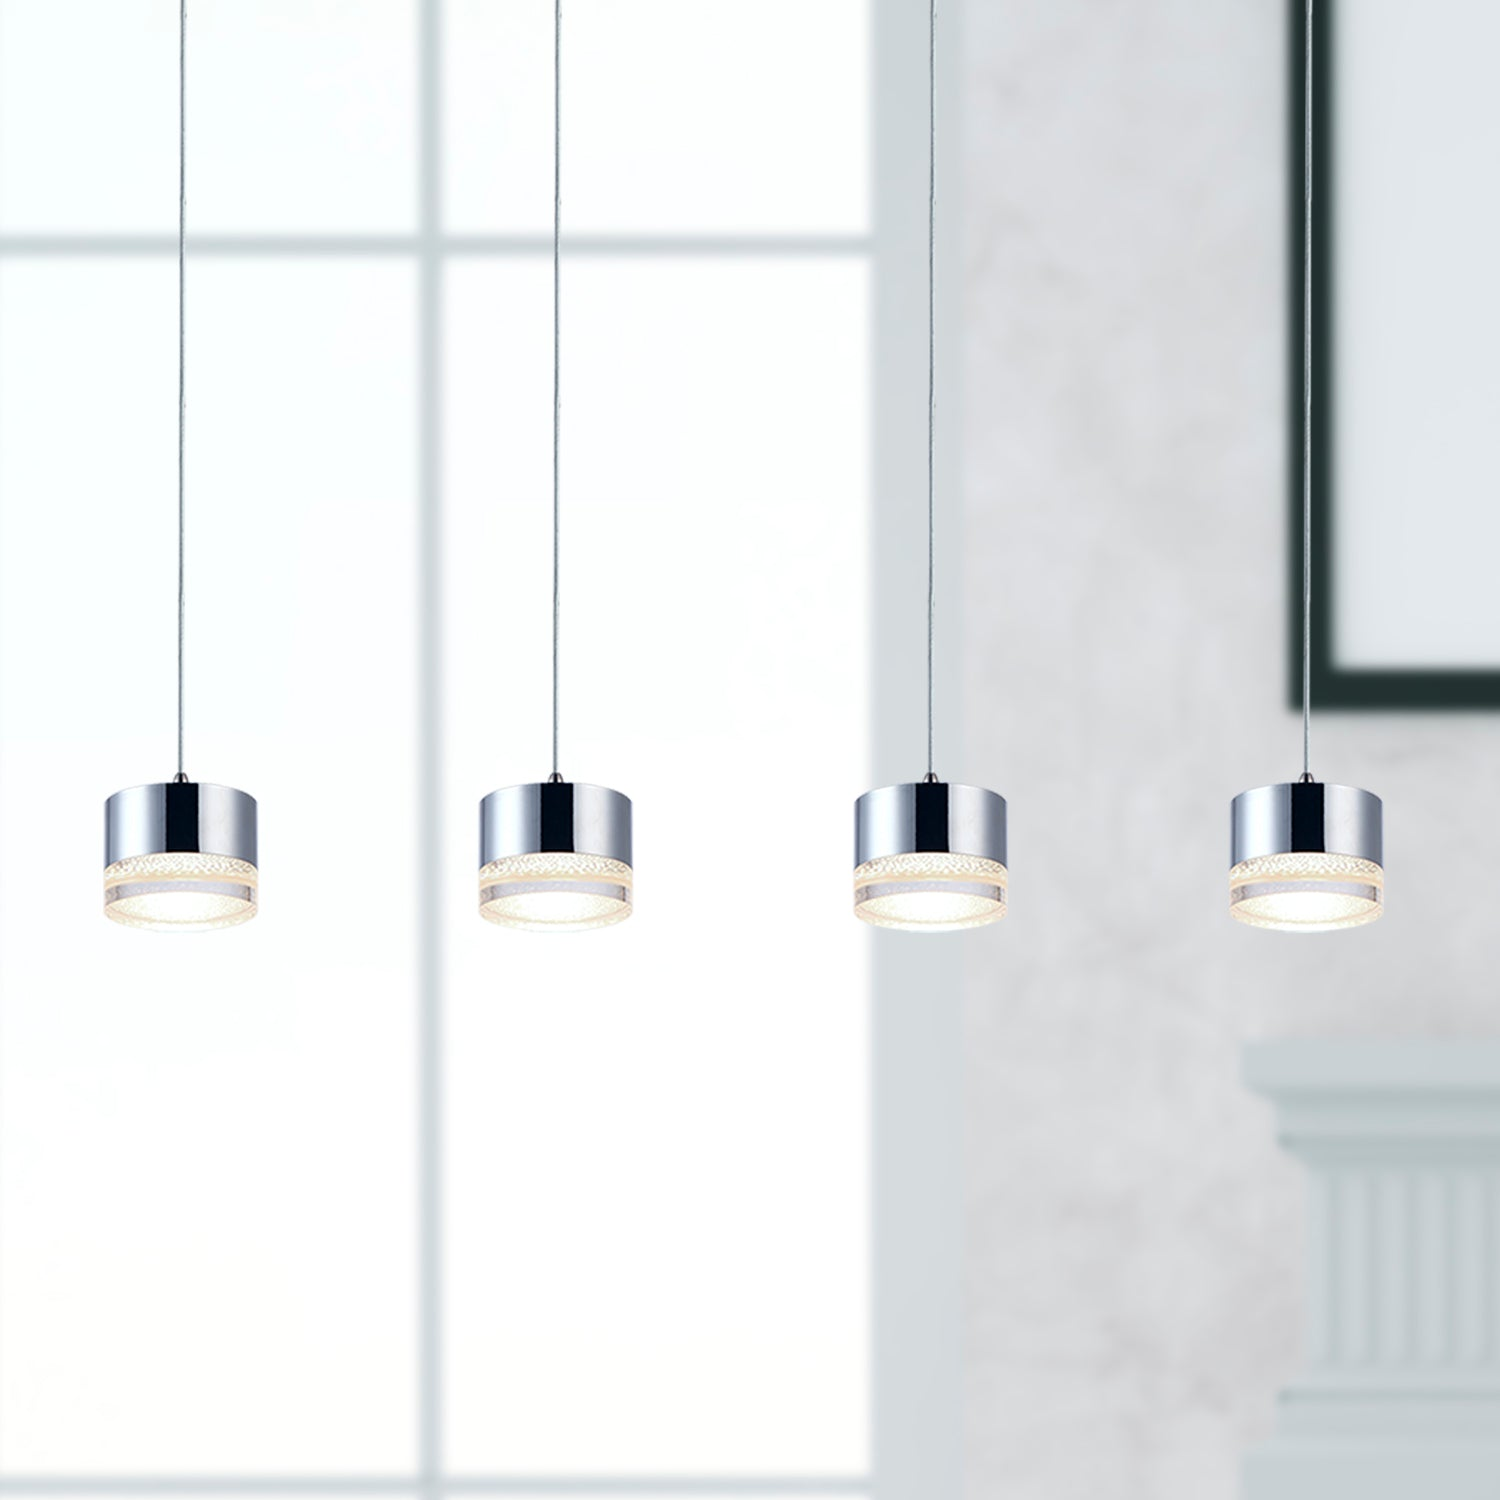 Jupiter 4-light LED mini pendant